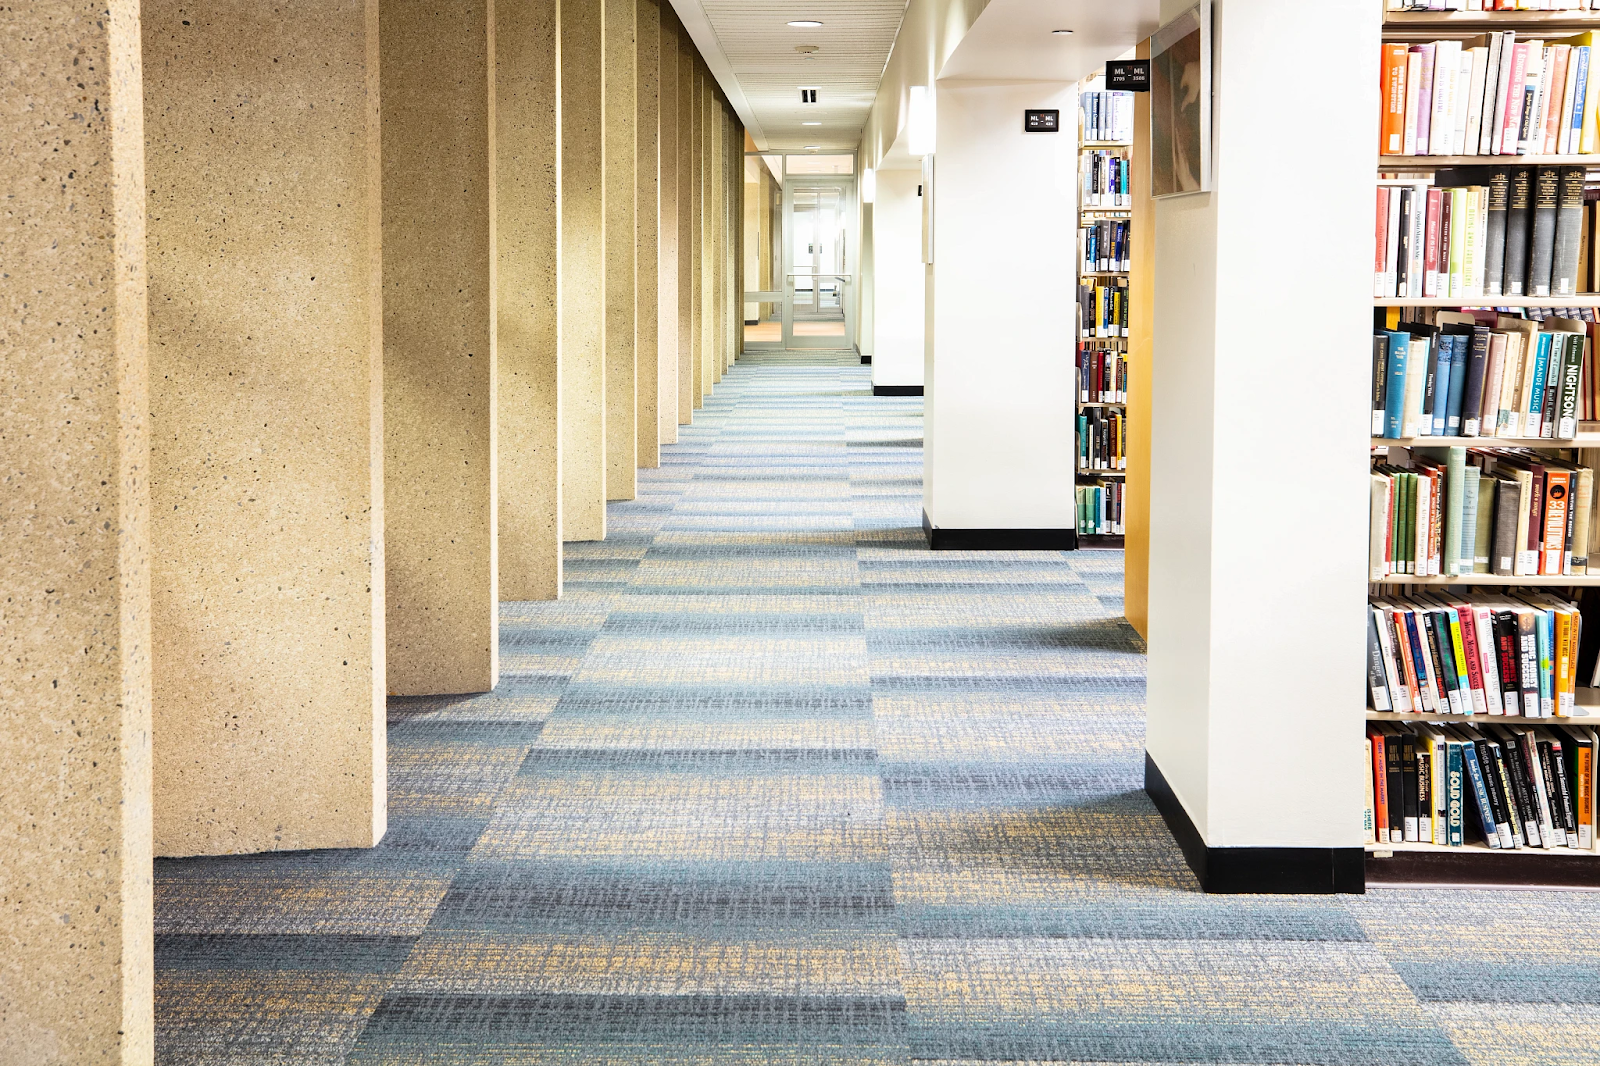 blue and grey carpet flooring for commercial spaces and education spaces